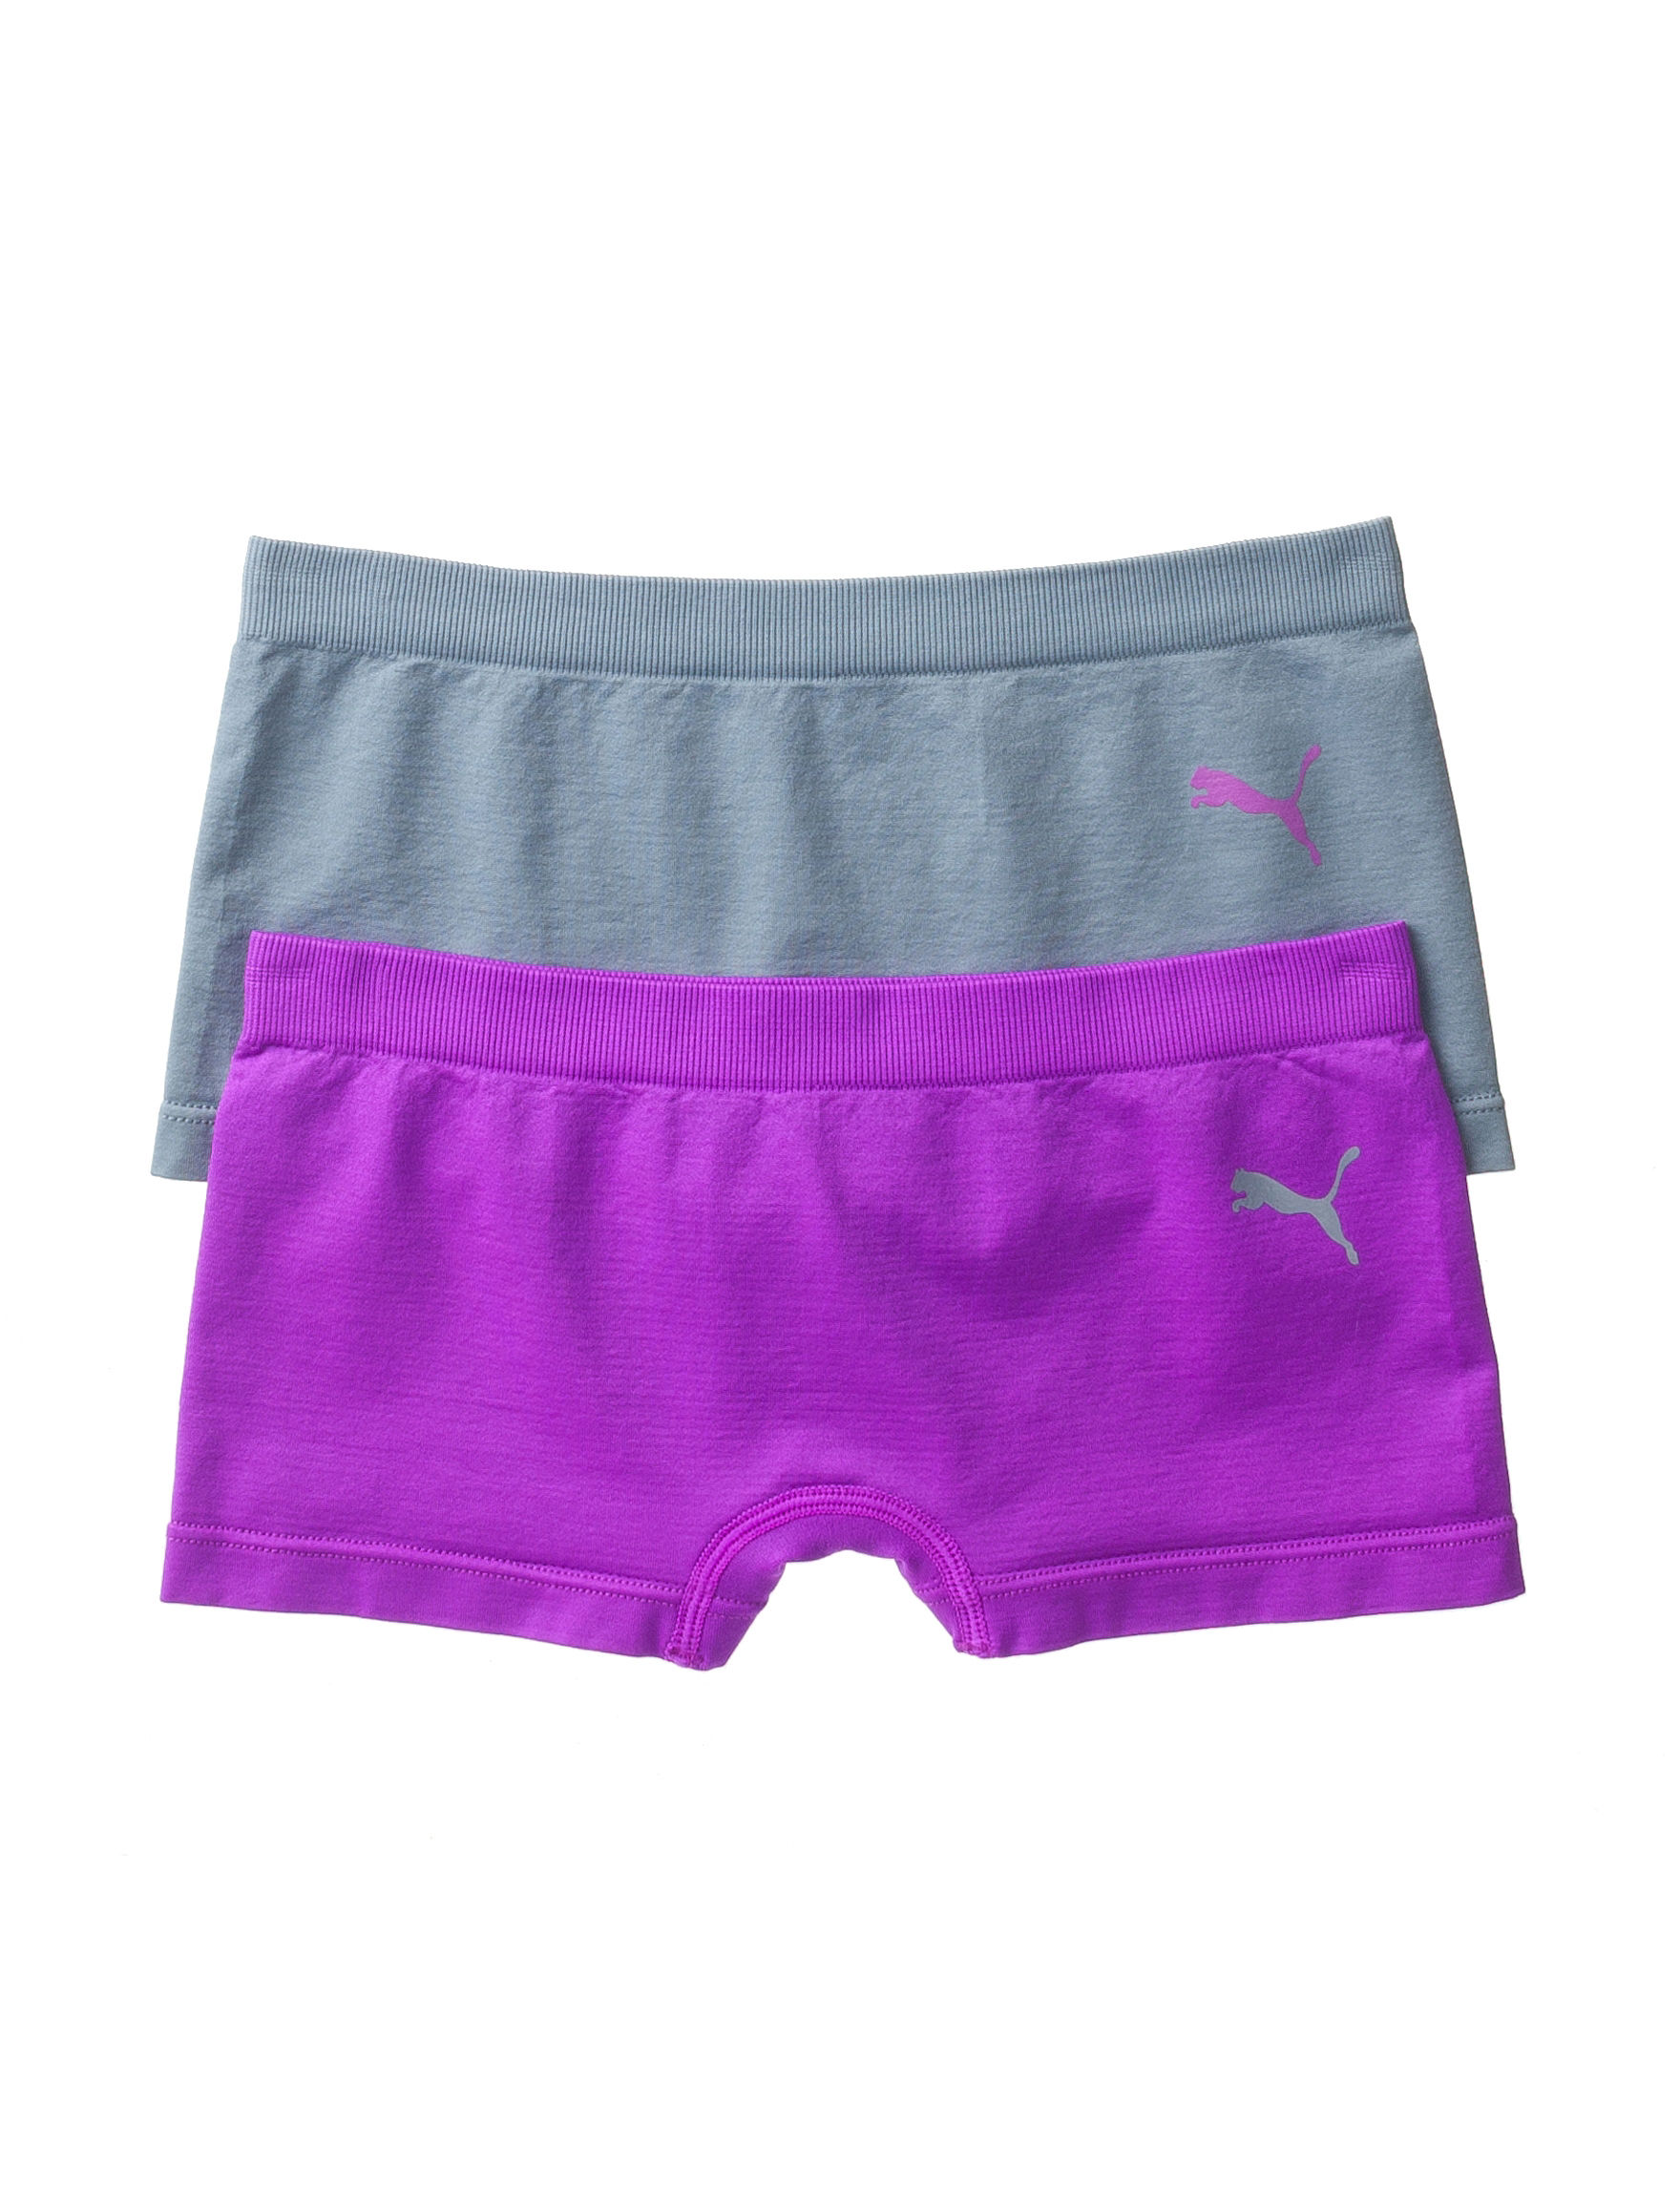 Puma Purple / Grey Panties